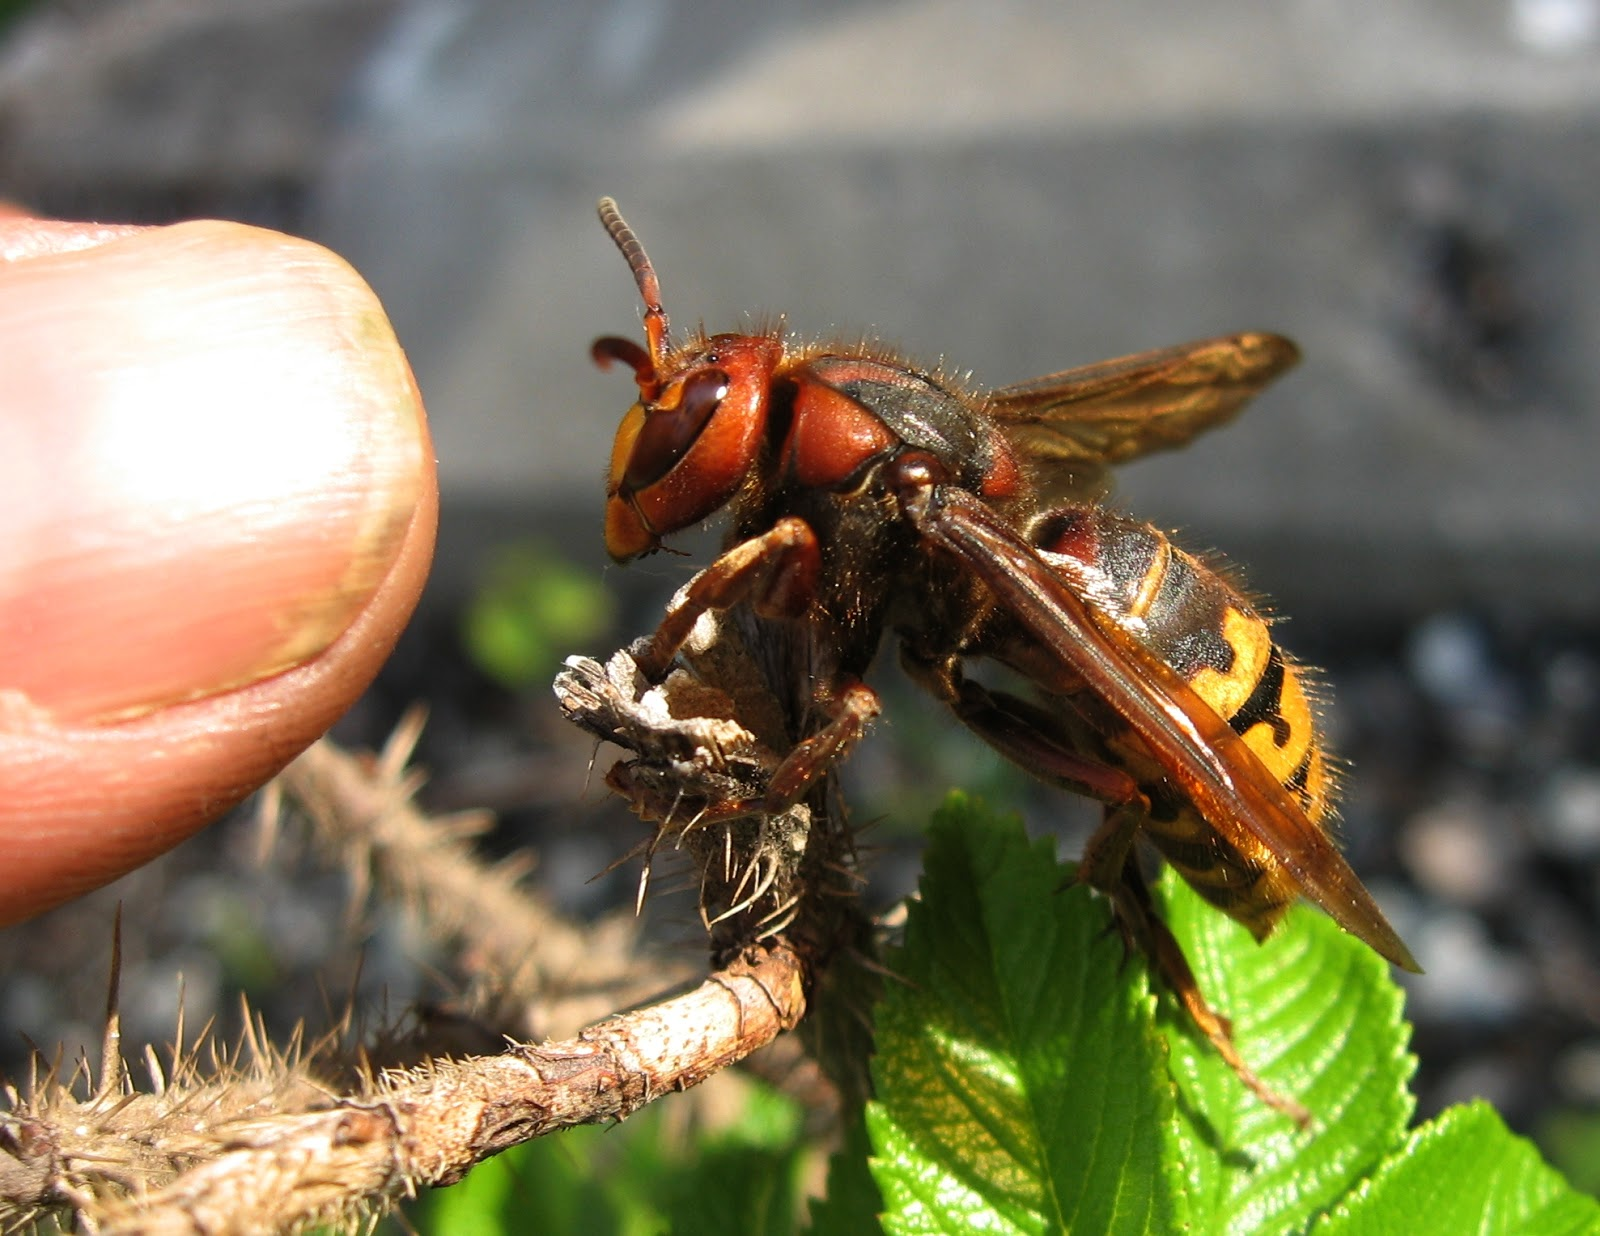 queen hornet insect displaying 18 images for queen hornet insectQueen Hornet Insect